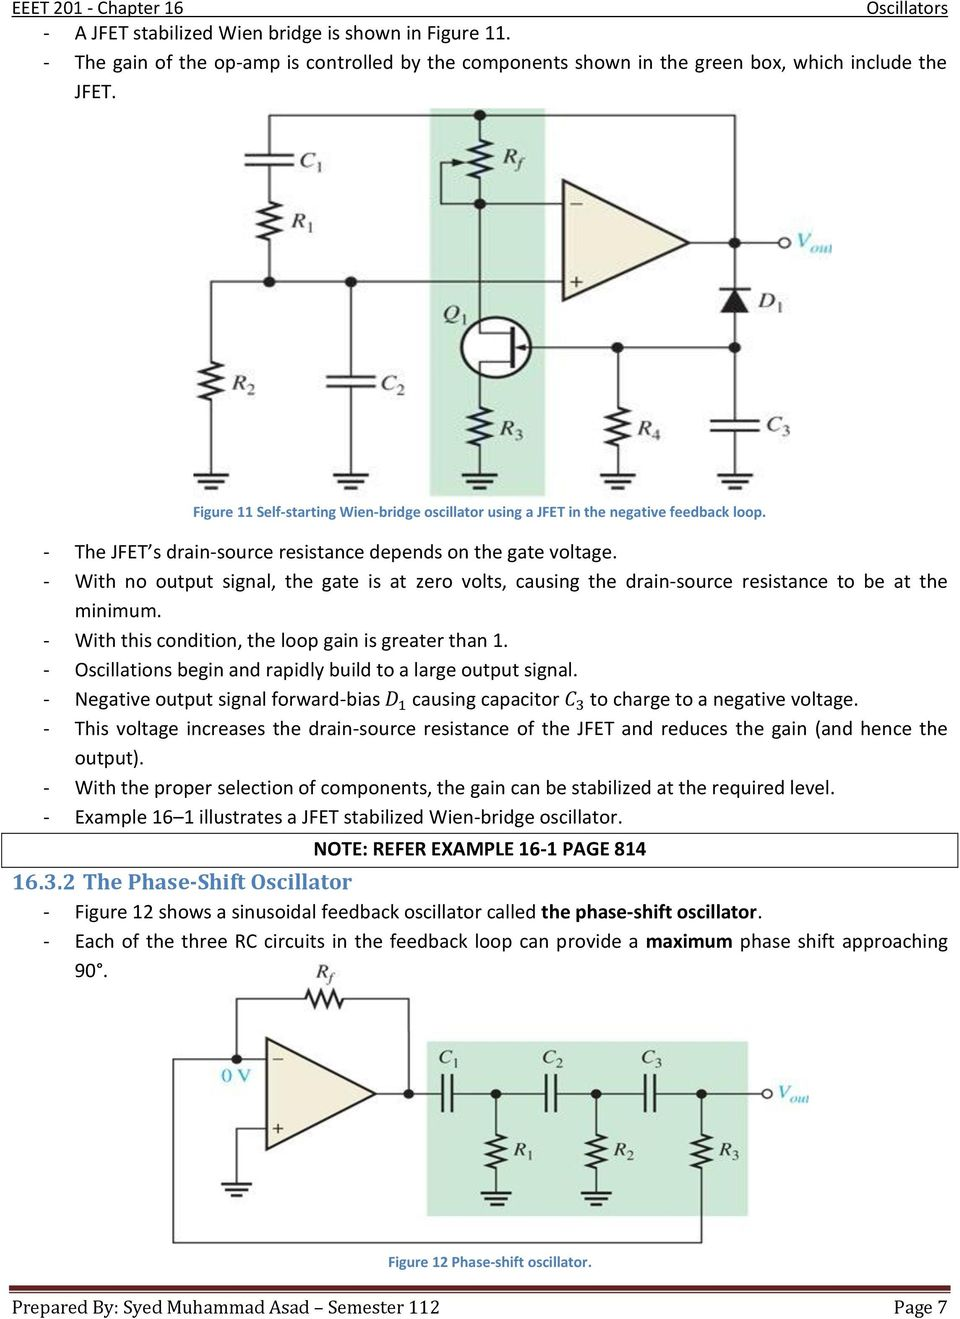 Chapter 16 Oscillators Pdf Phase Shift Oscillator Circuit Explanation Using Opamp Transistor With No Output Signal The Gate Is At Zero Volts Causing Drain